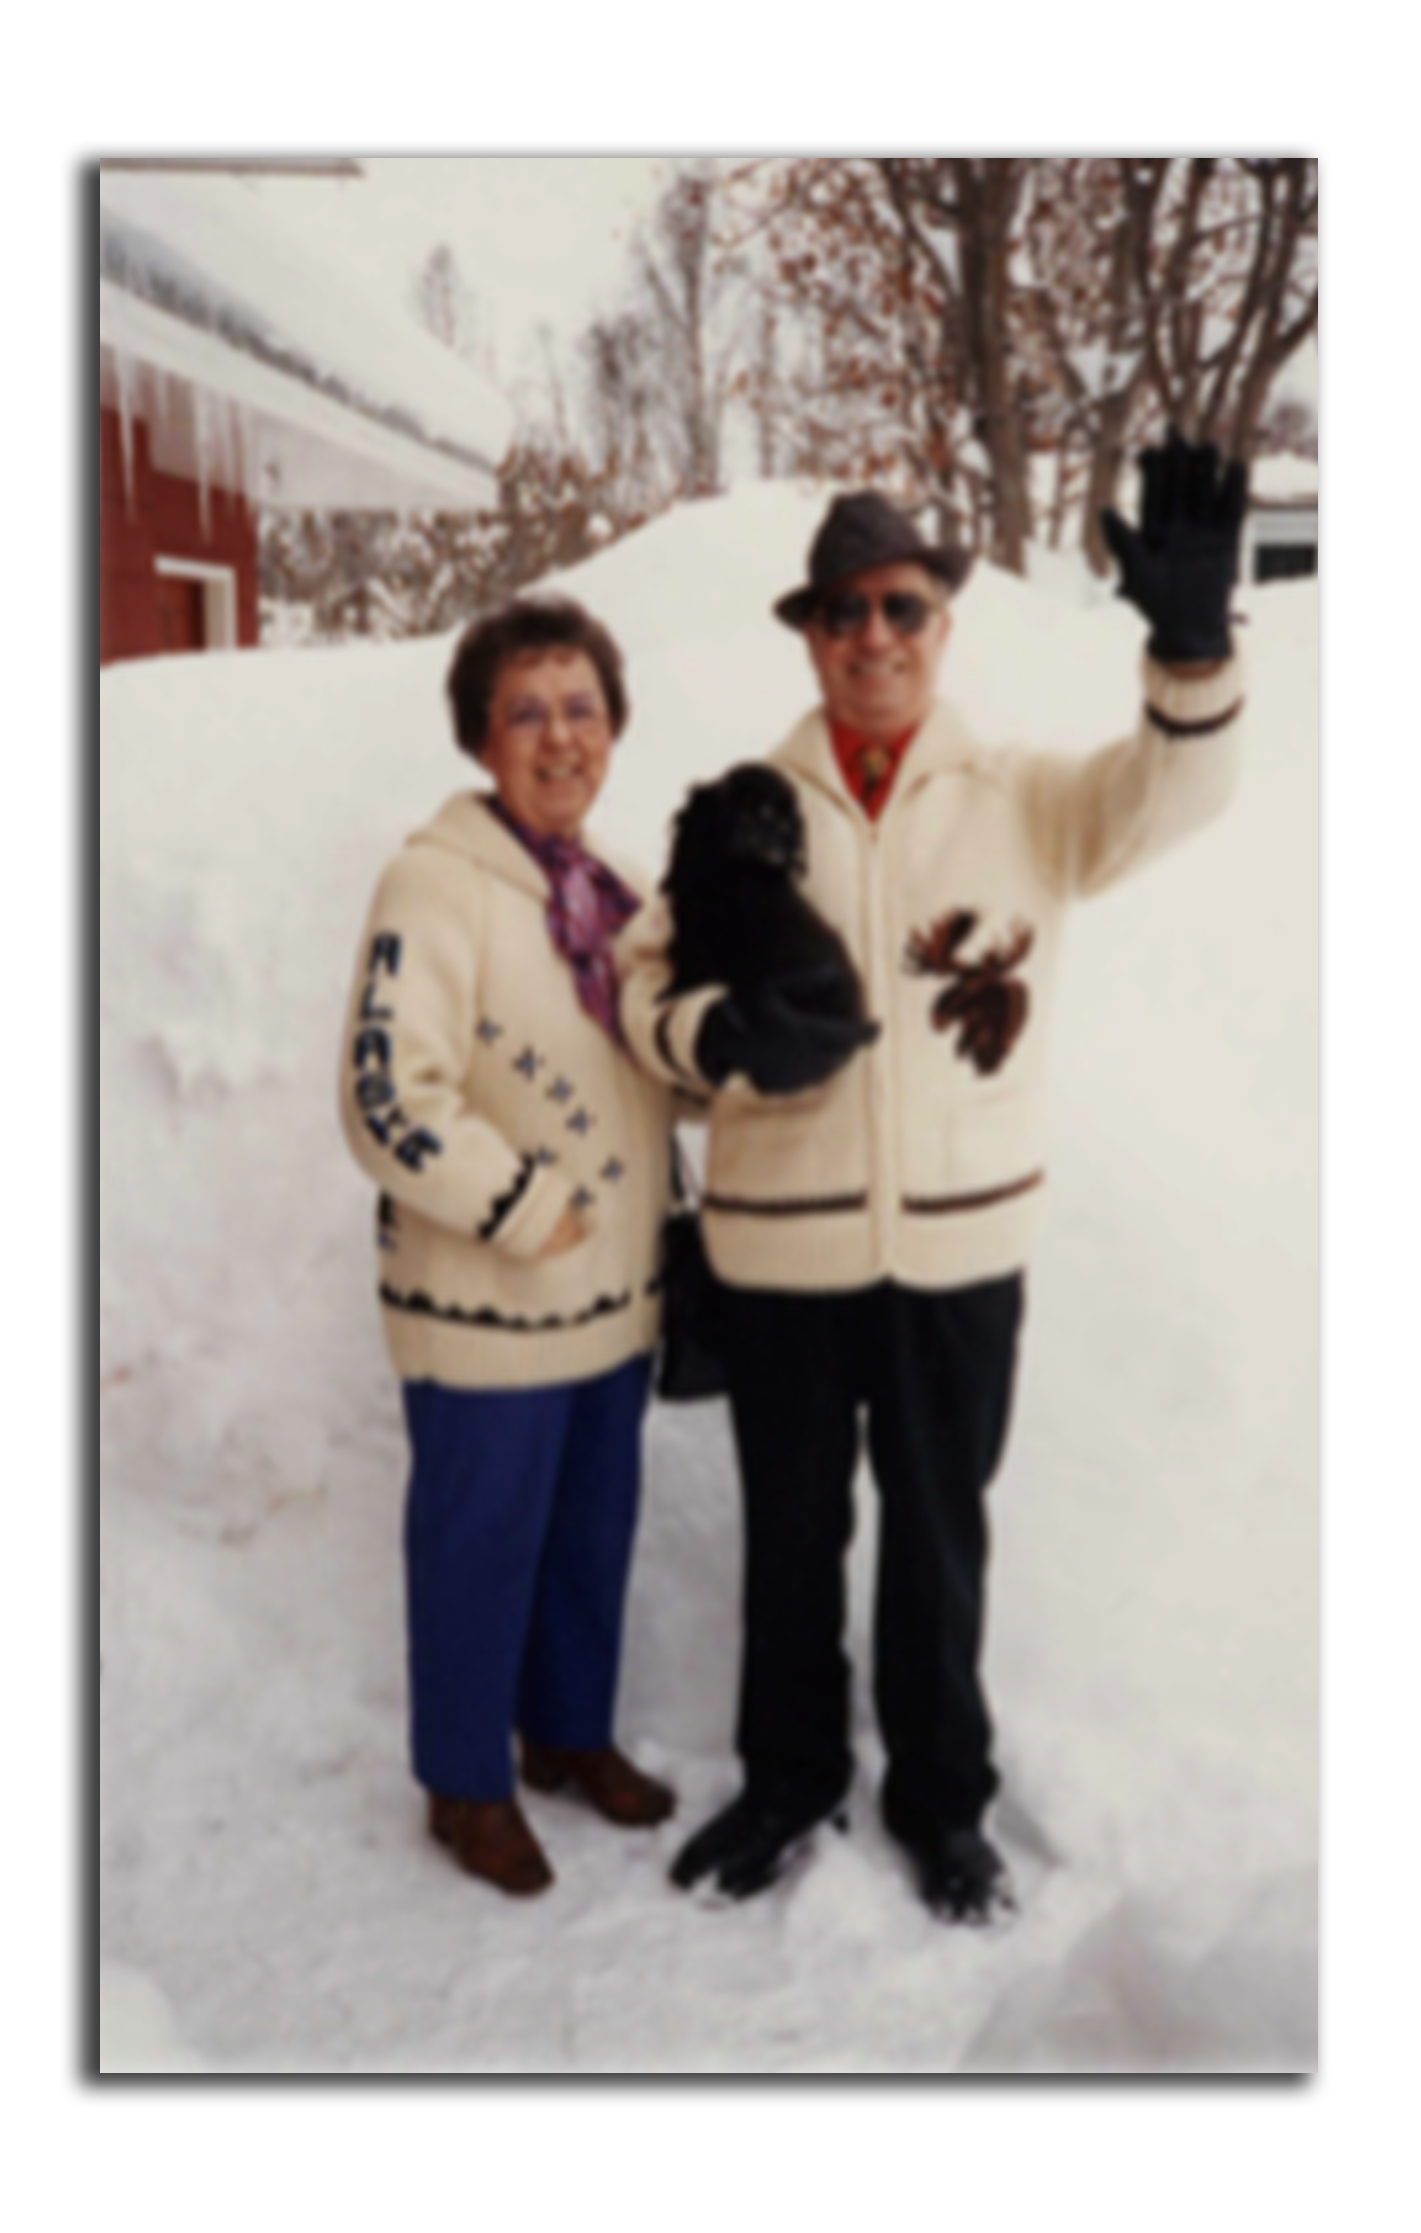 1970 - Visiting Alaska in evangelistic ministry in 1970, Neale and Ida Sheneman strongly sensed the spiritual darkness and growing number of people without a saving experience with Jesus in East Anchorage.